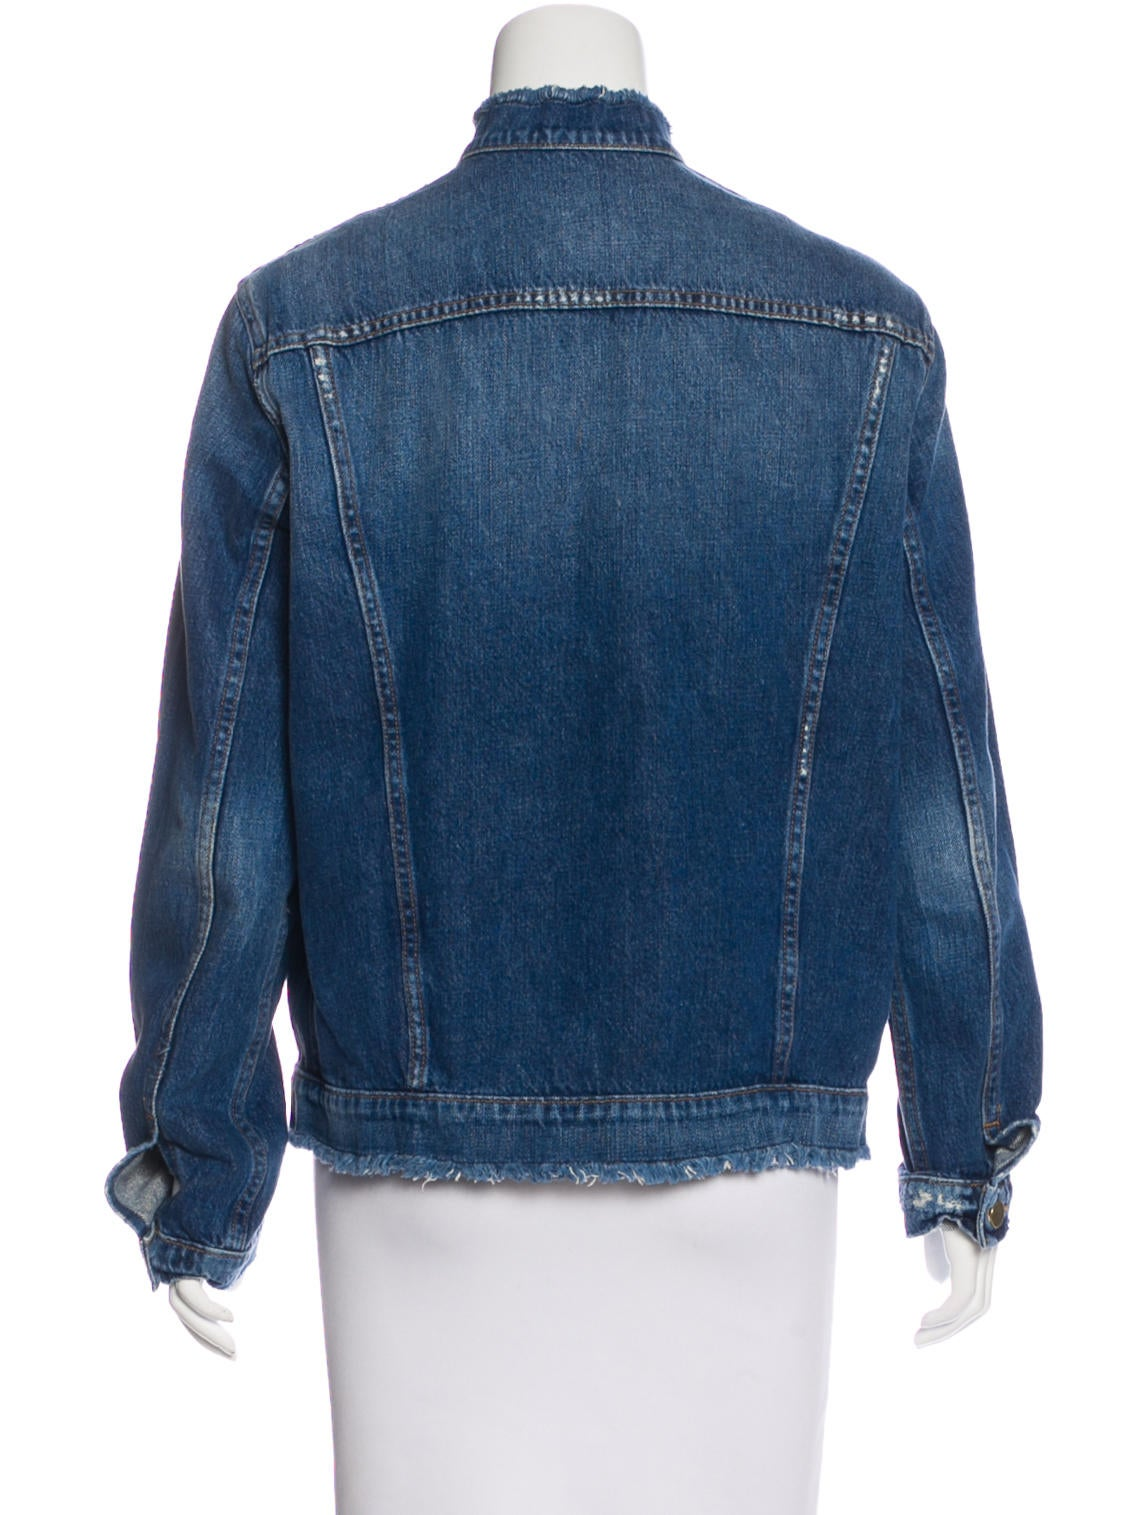 Frame Denim Denim Button-Up Jacket w/ Tags - Clothing - WFD27474 | The RealReal